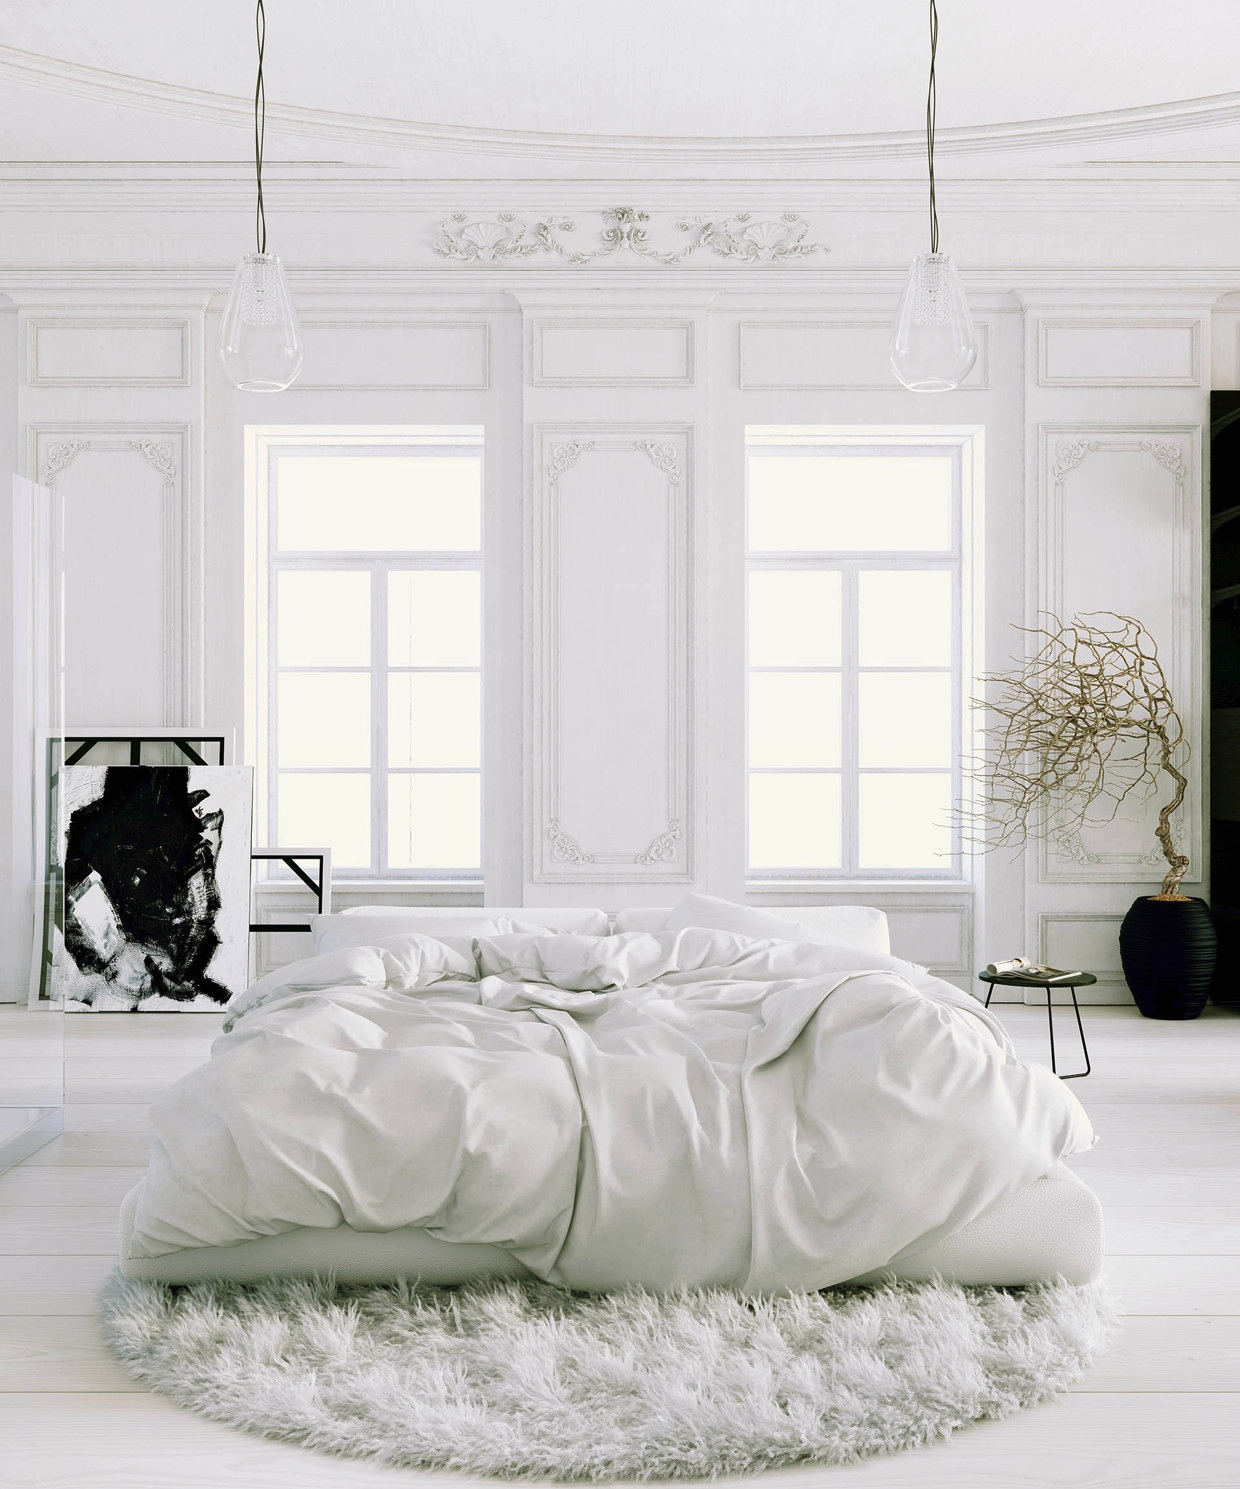 41 white bedroom interior design ideas pictures Photos of bedrooms interior design